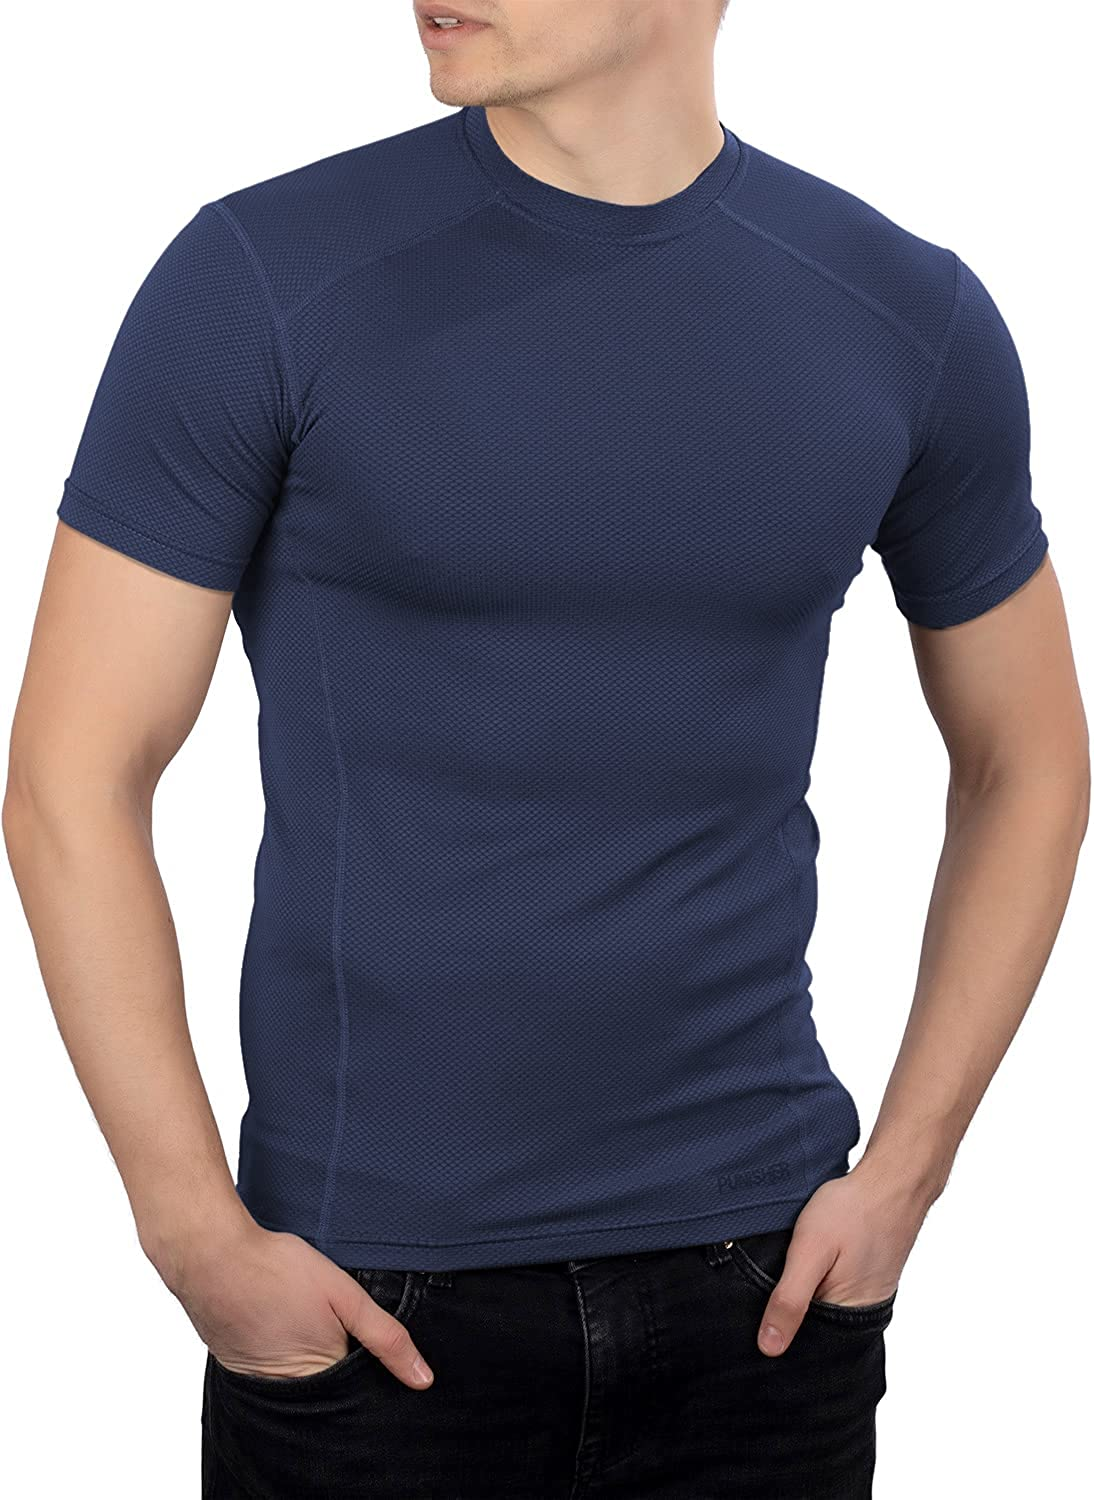 281Z Mens Tactical Moisture Wicking T-Shirt - Hiking Training Outdoor - Active Athletic Workout - Polartec Delta (Navy Blue)